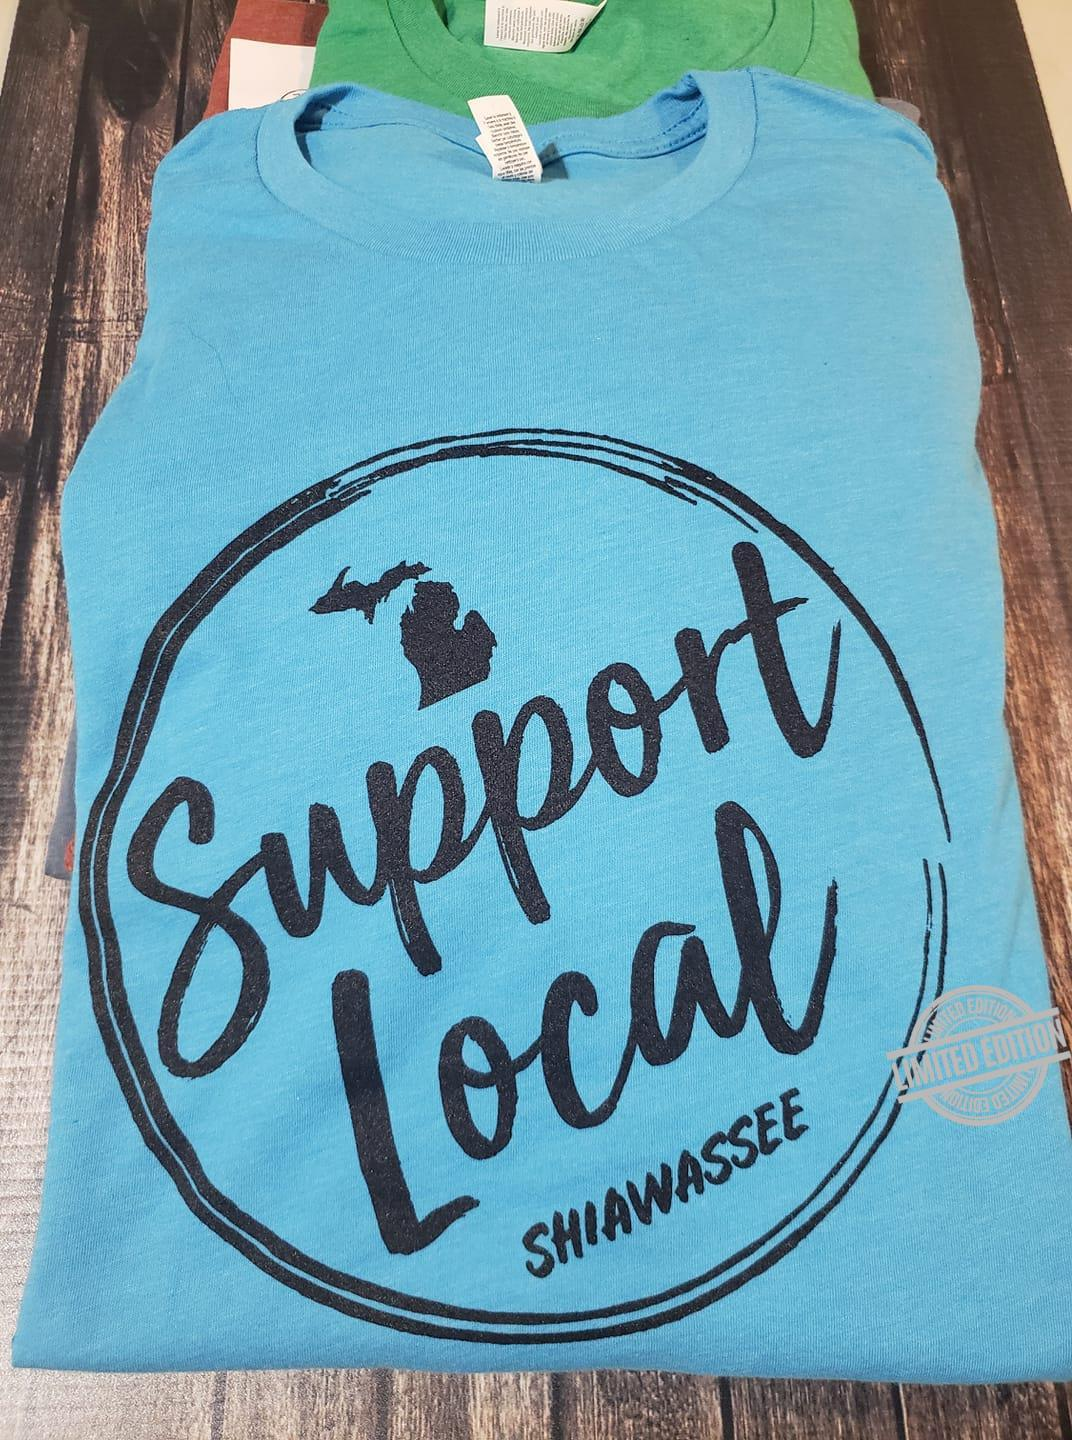 Support Local Shiawassee Shirt